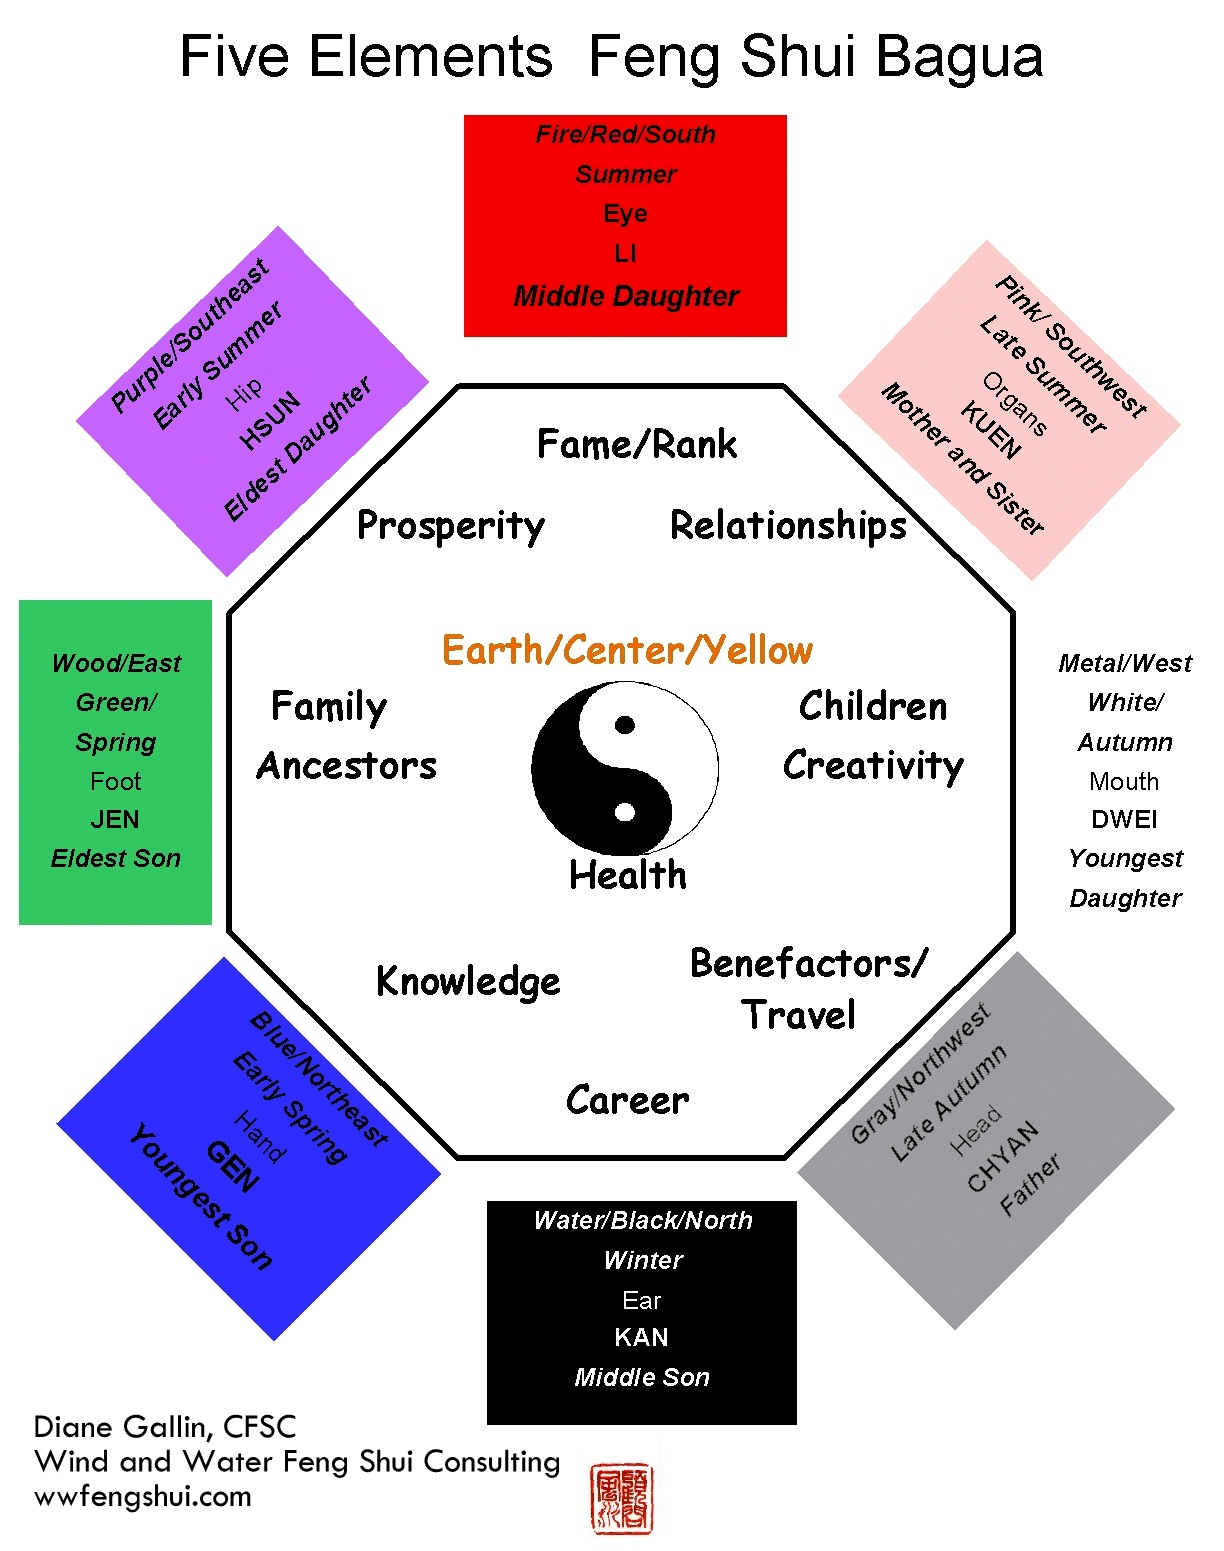 The Feng Shui Bagua - Wind and Water Feng Shui Consulting